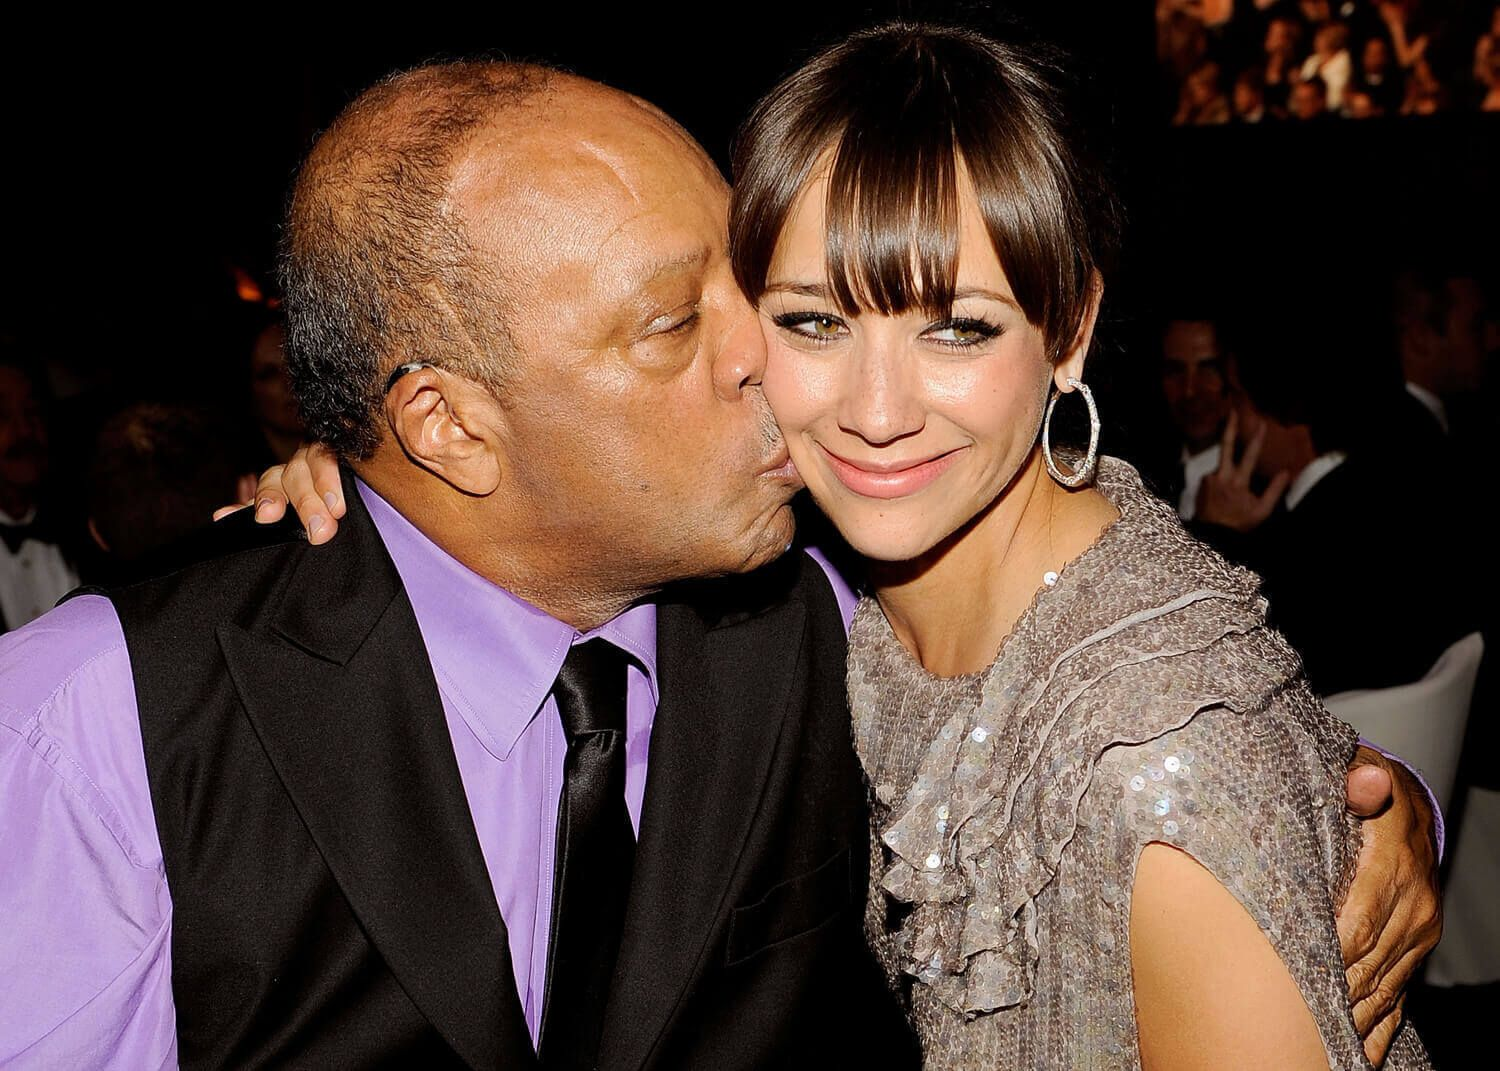 Rashida Jones and Quincy Jones at a fancy event